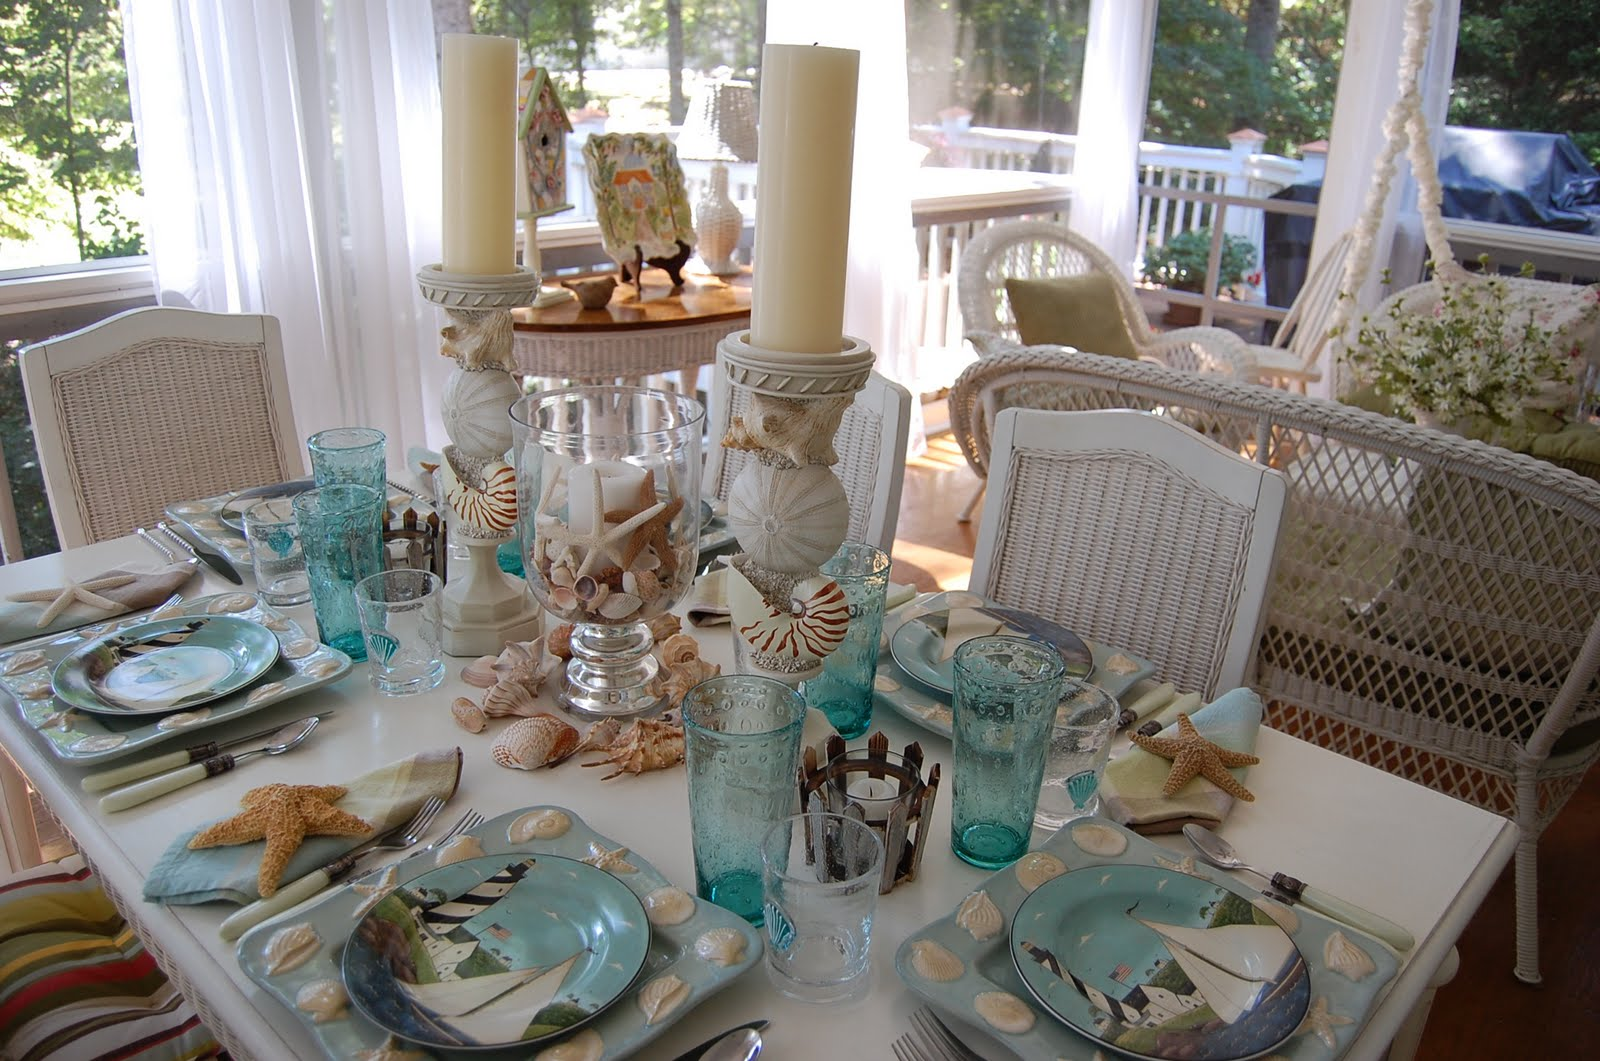 beach tablescape welcome to the th tablescape thursday beachy kitchen table Beach Themed Table Setting Tablescape